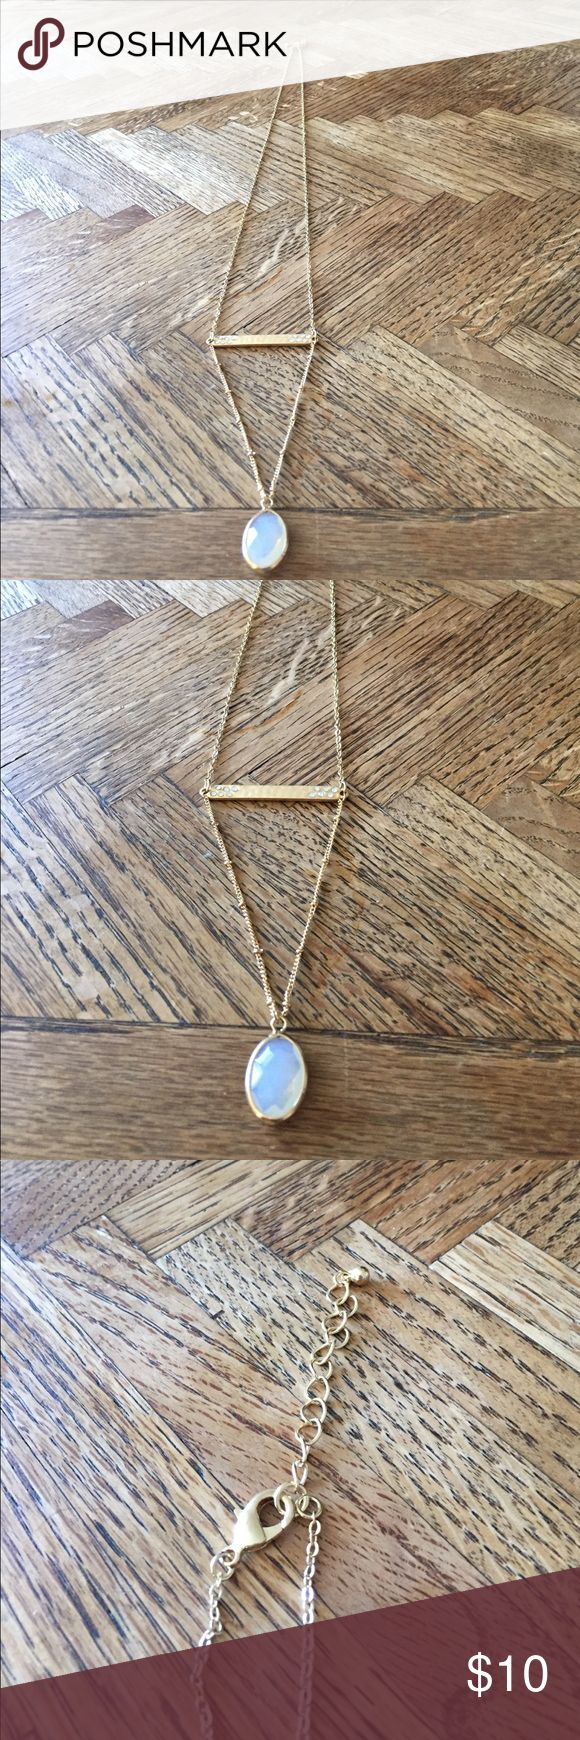 """Beautiful gold chain necklace w/ adjustable length Worn once! Length of one side of necklace approx 14"""" (so 28"""" total), but length is adjustable!! Jewelry Necklaces"""